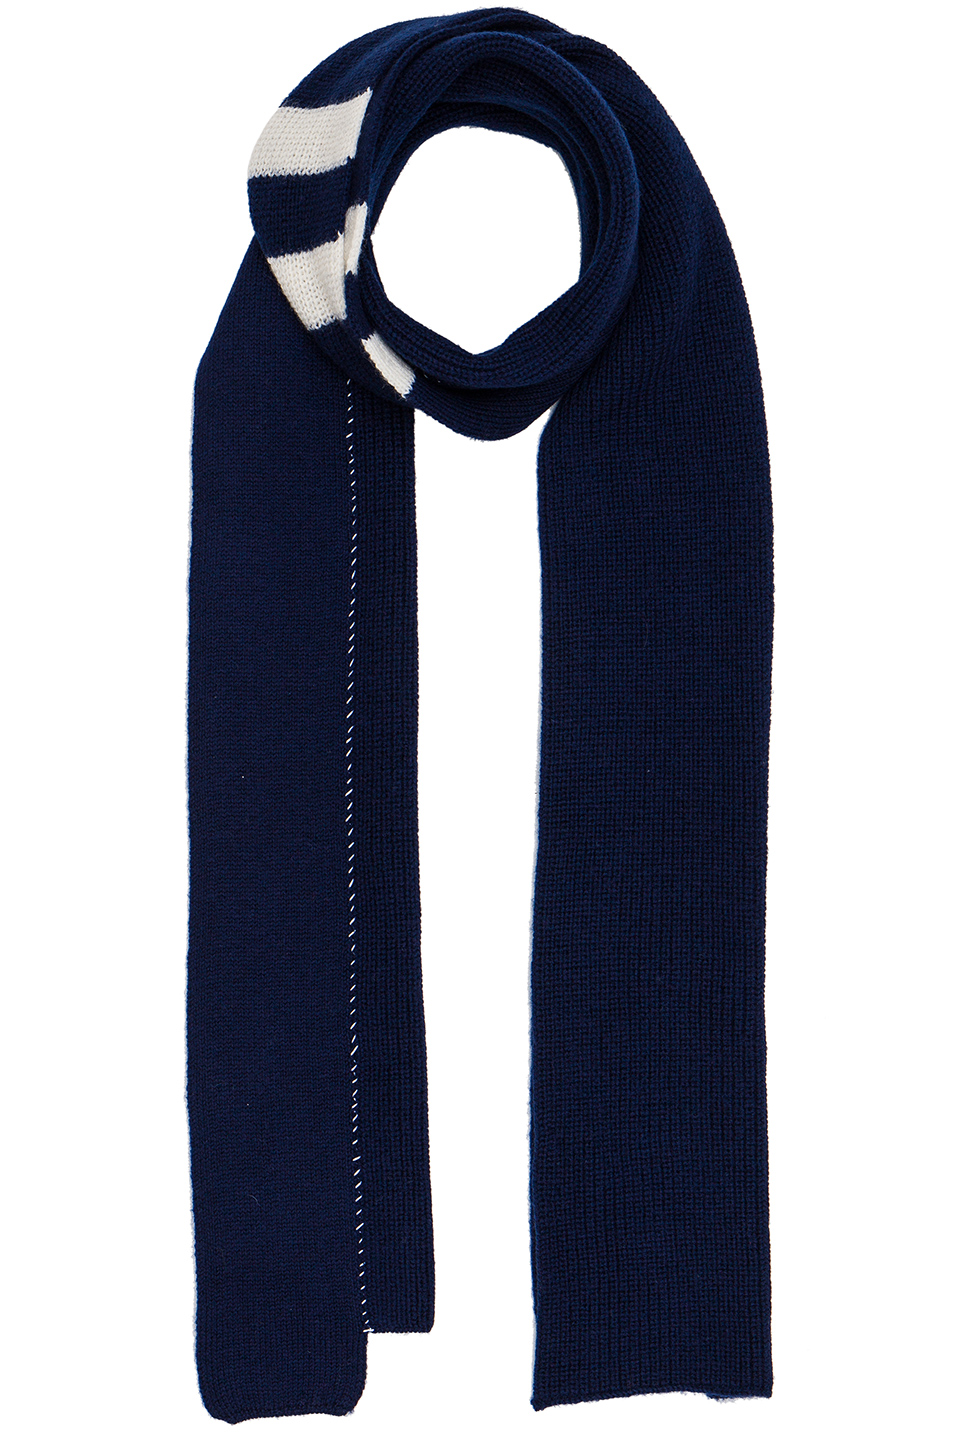 Photo of Raf Simons 2 Paneled Scarf in Blue - shop Raf Simons menswear